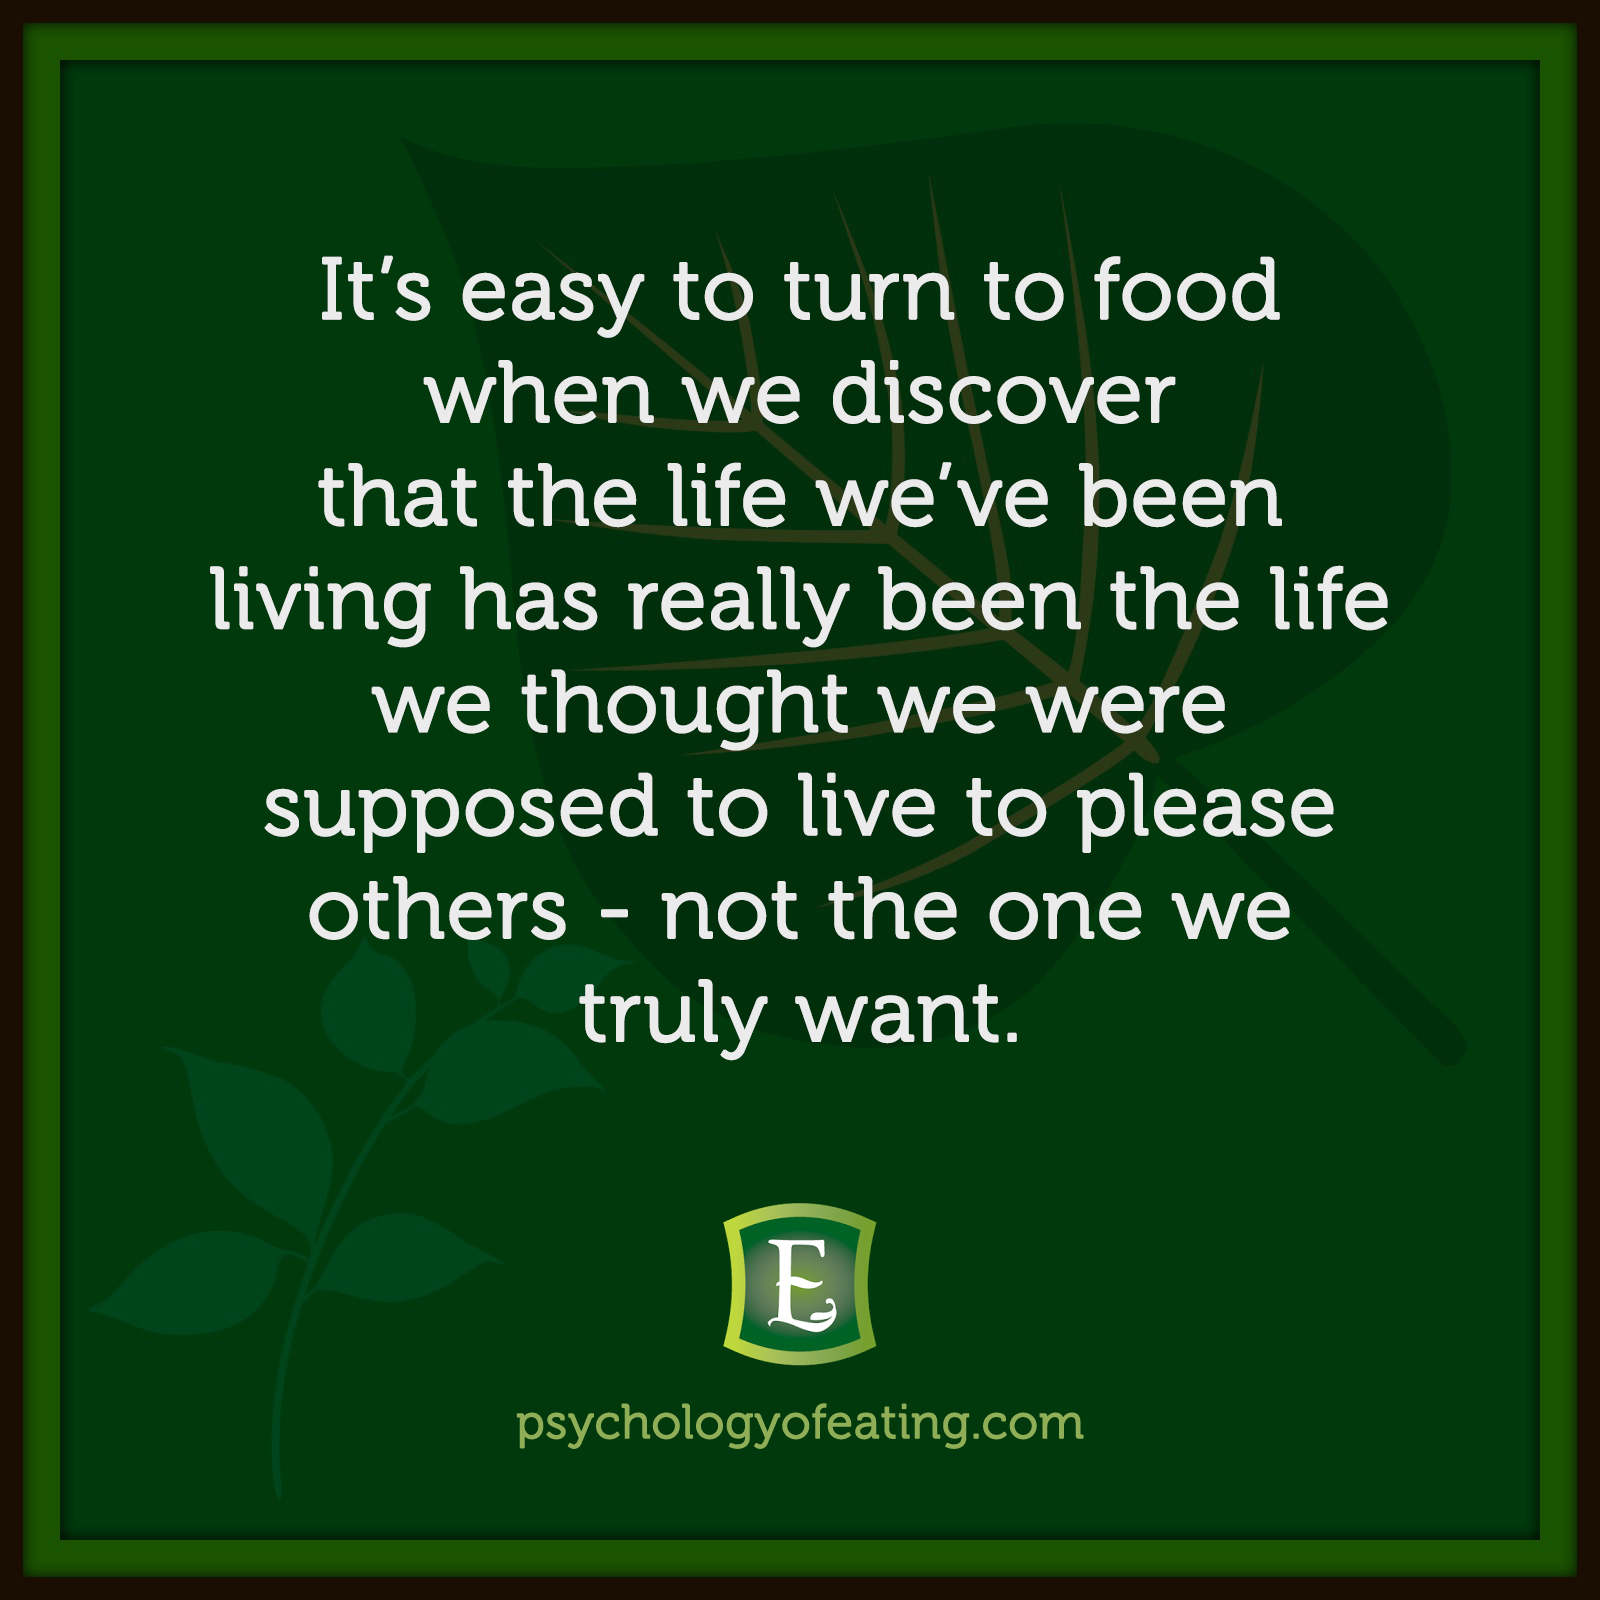 It's easy to turn to food when we discover that the life we've been living has really been the life we thought we were supposed to live to please others – not the one we truly want  #health #nutrition #eatingpsychology #IPE